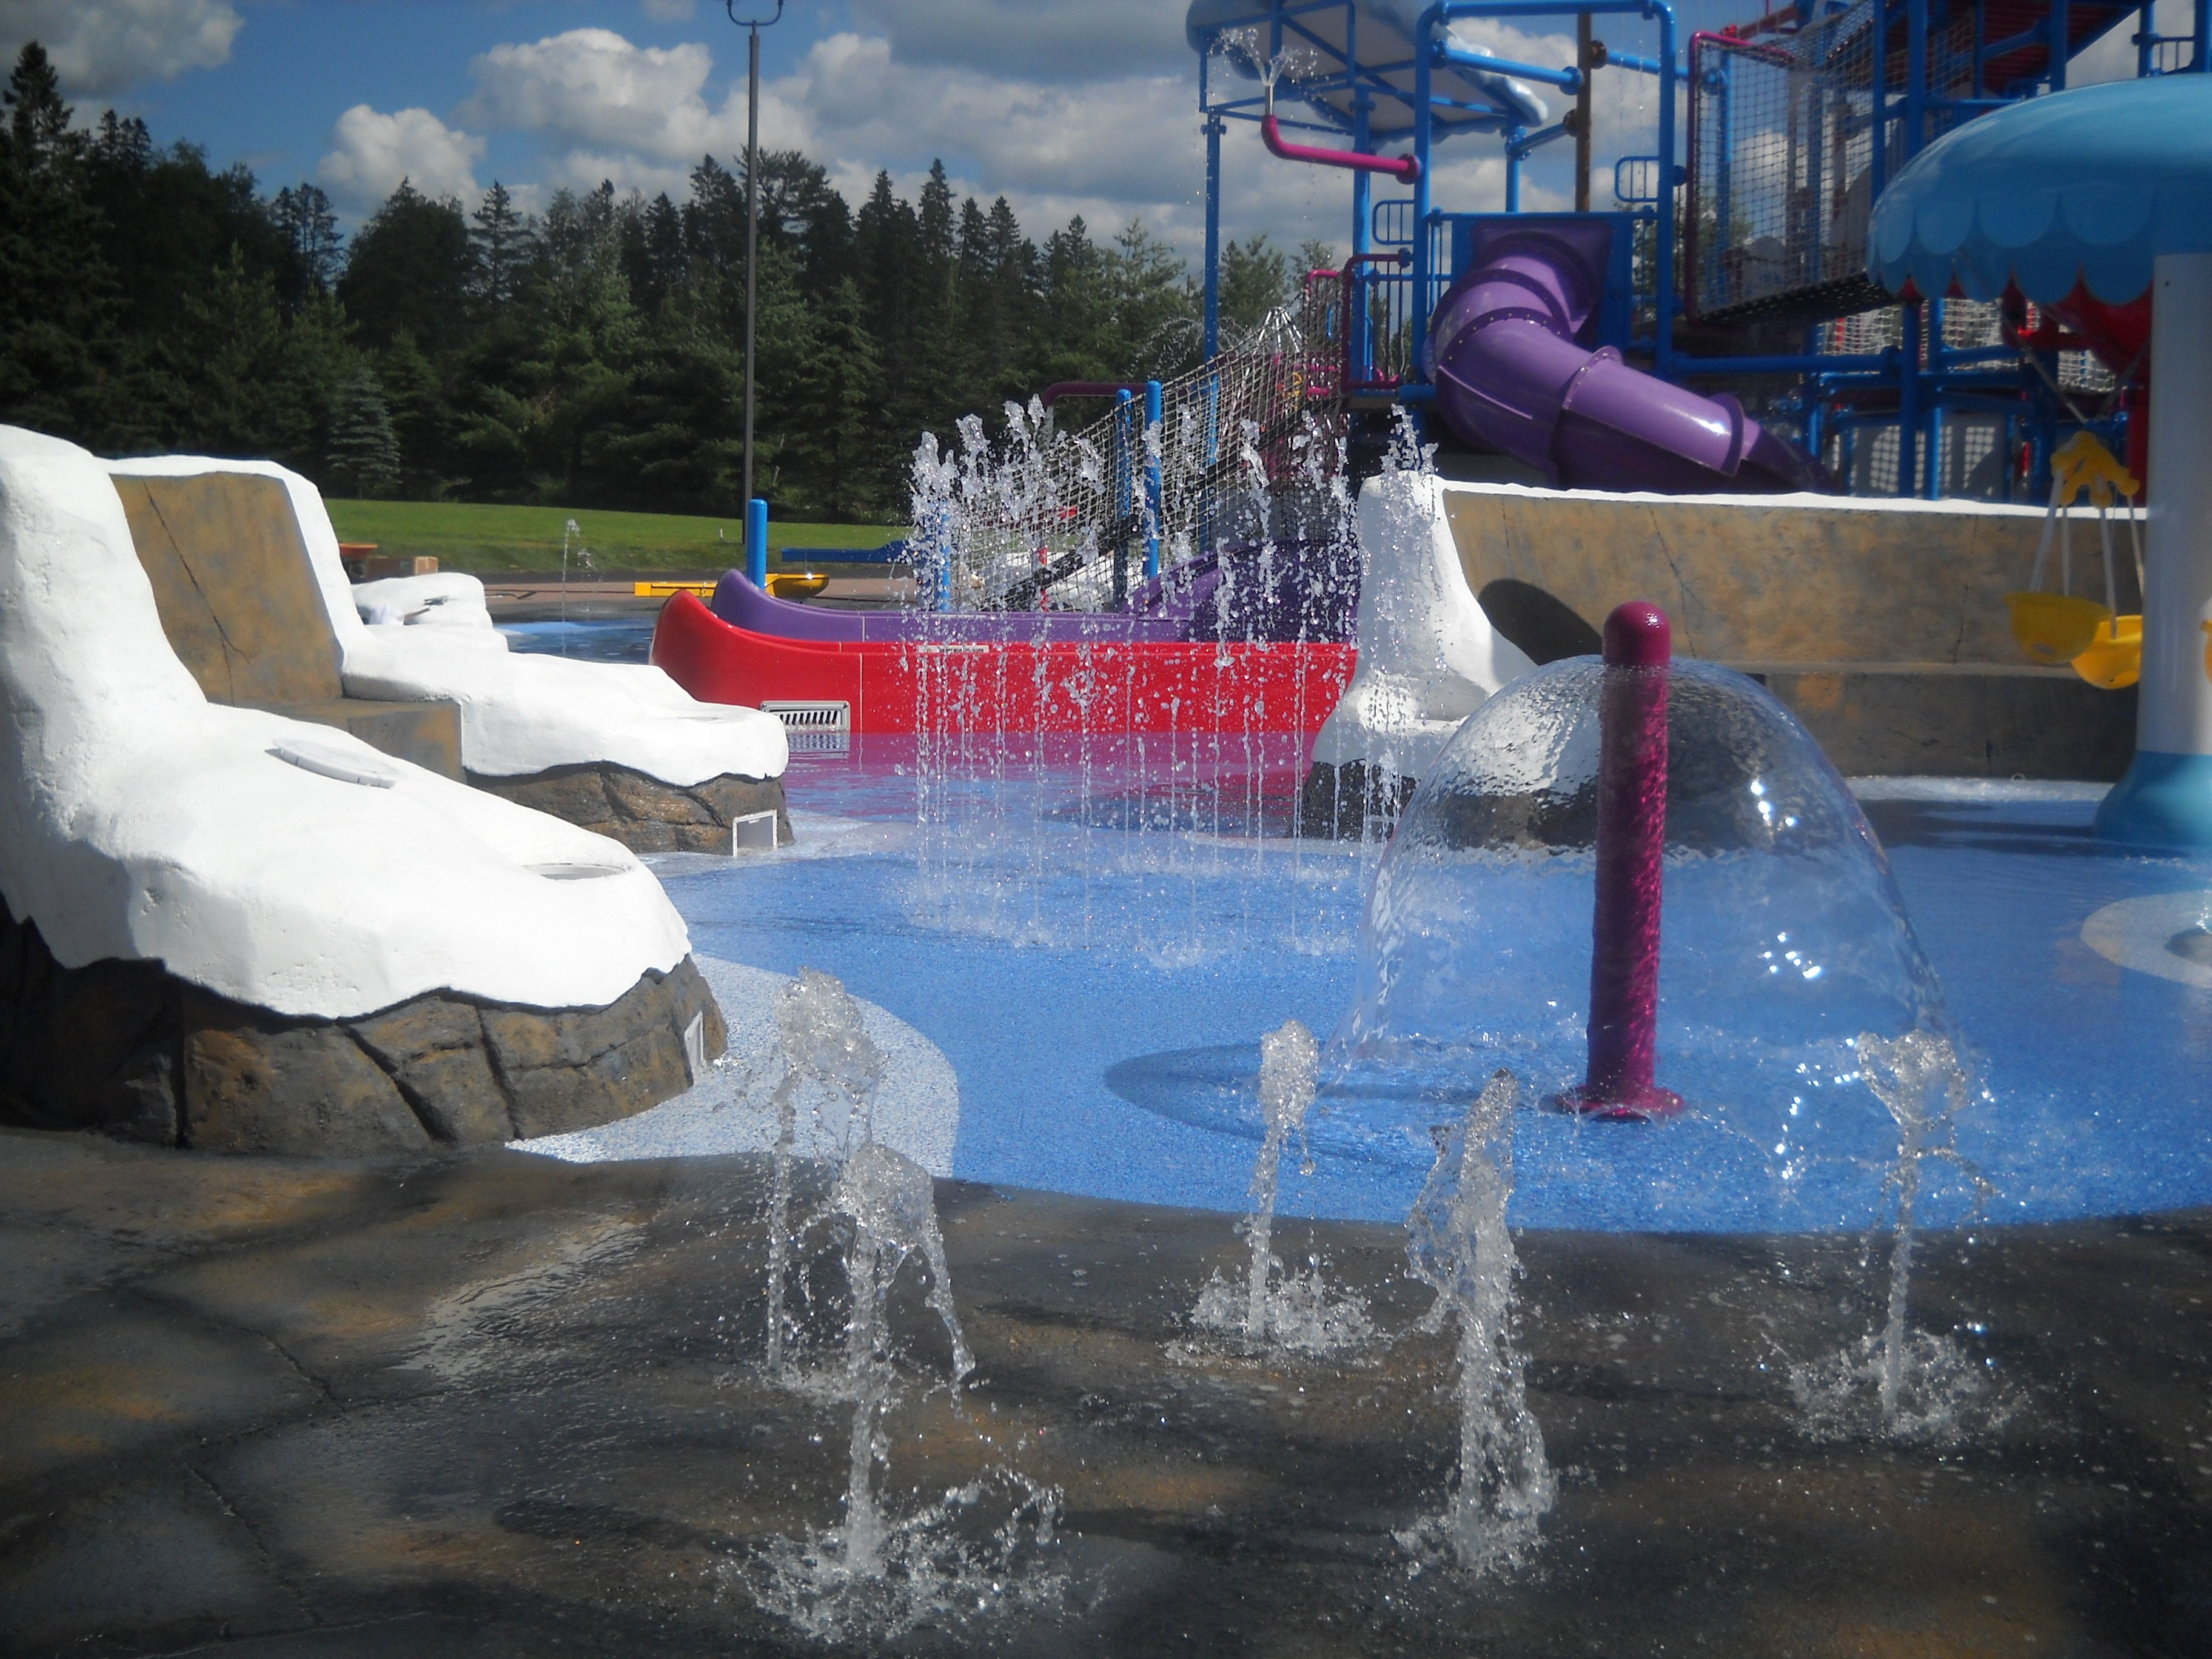 Splash Pad at Santa's Village